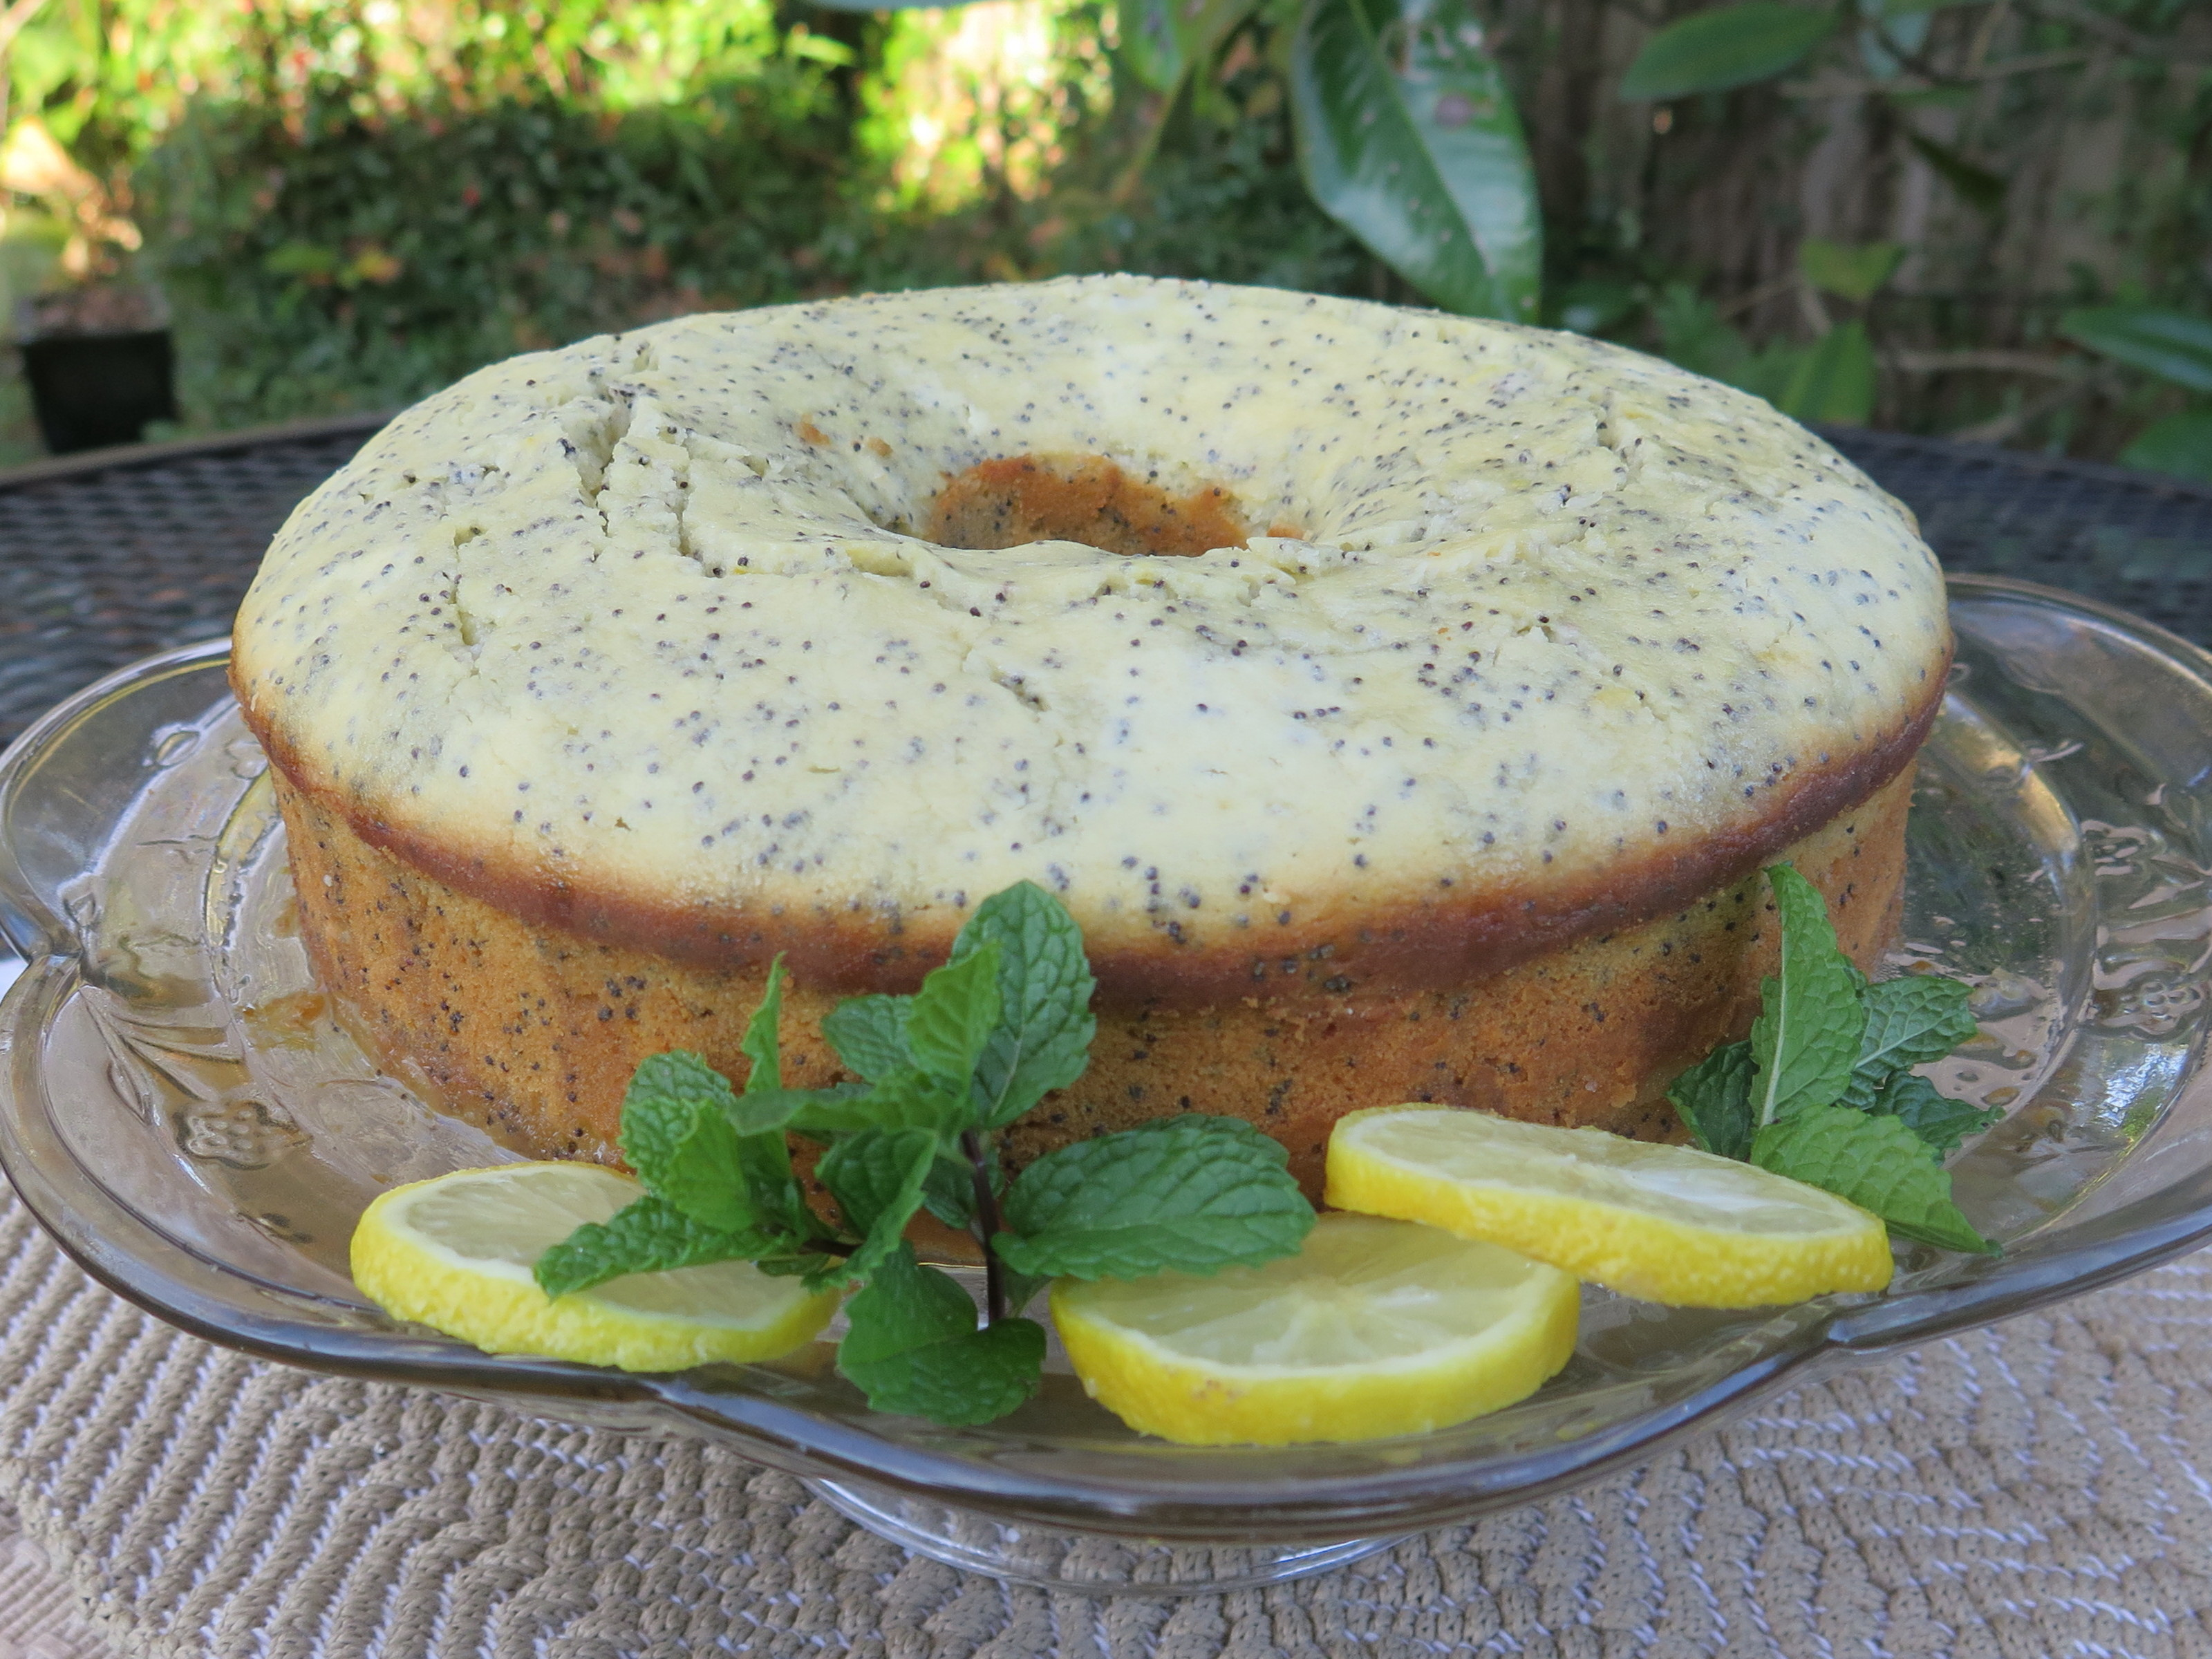 Variations on a Pound Cake beyondgumbo